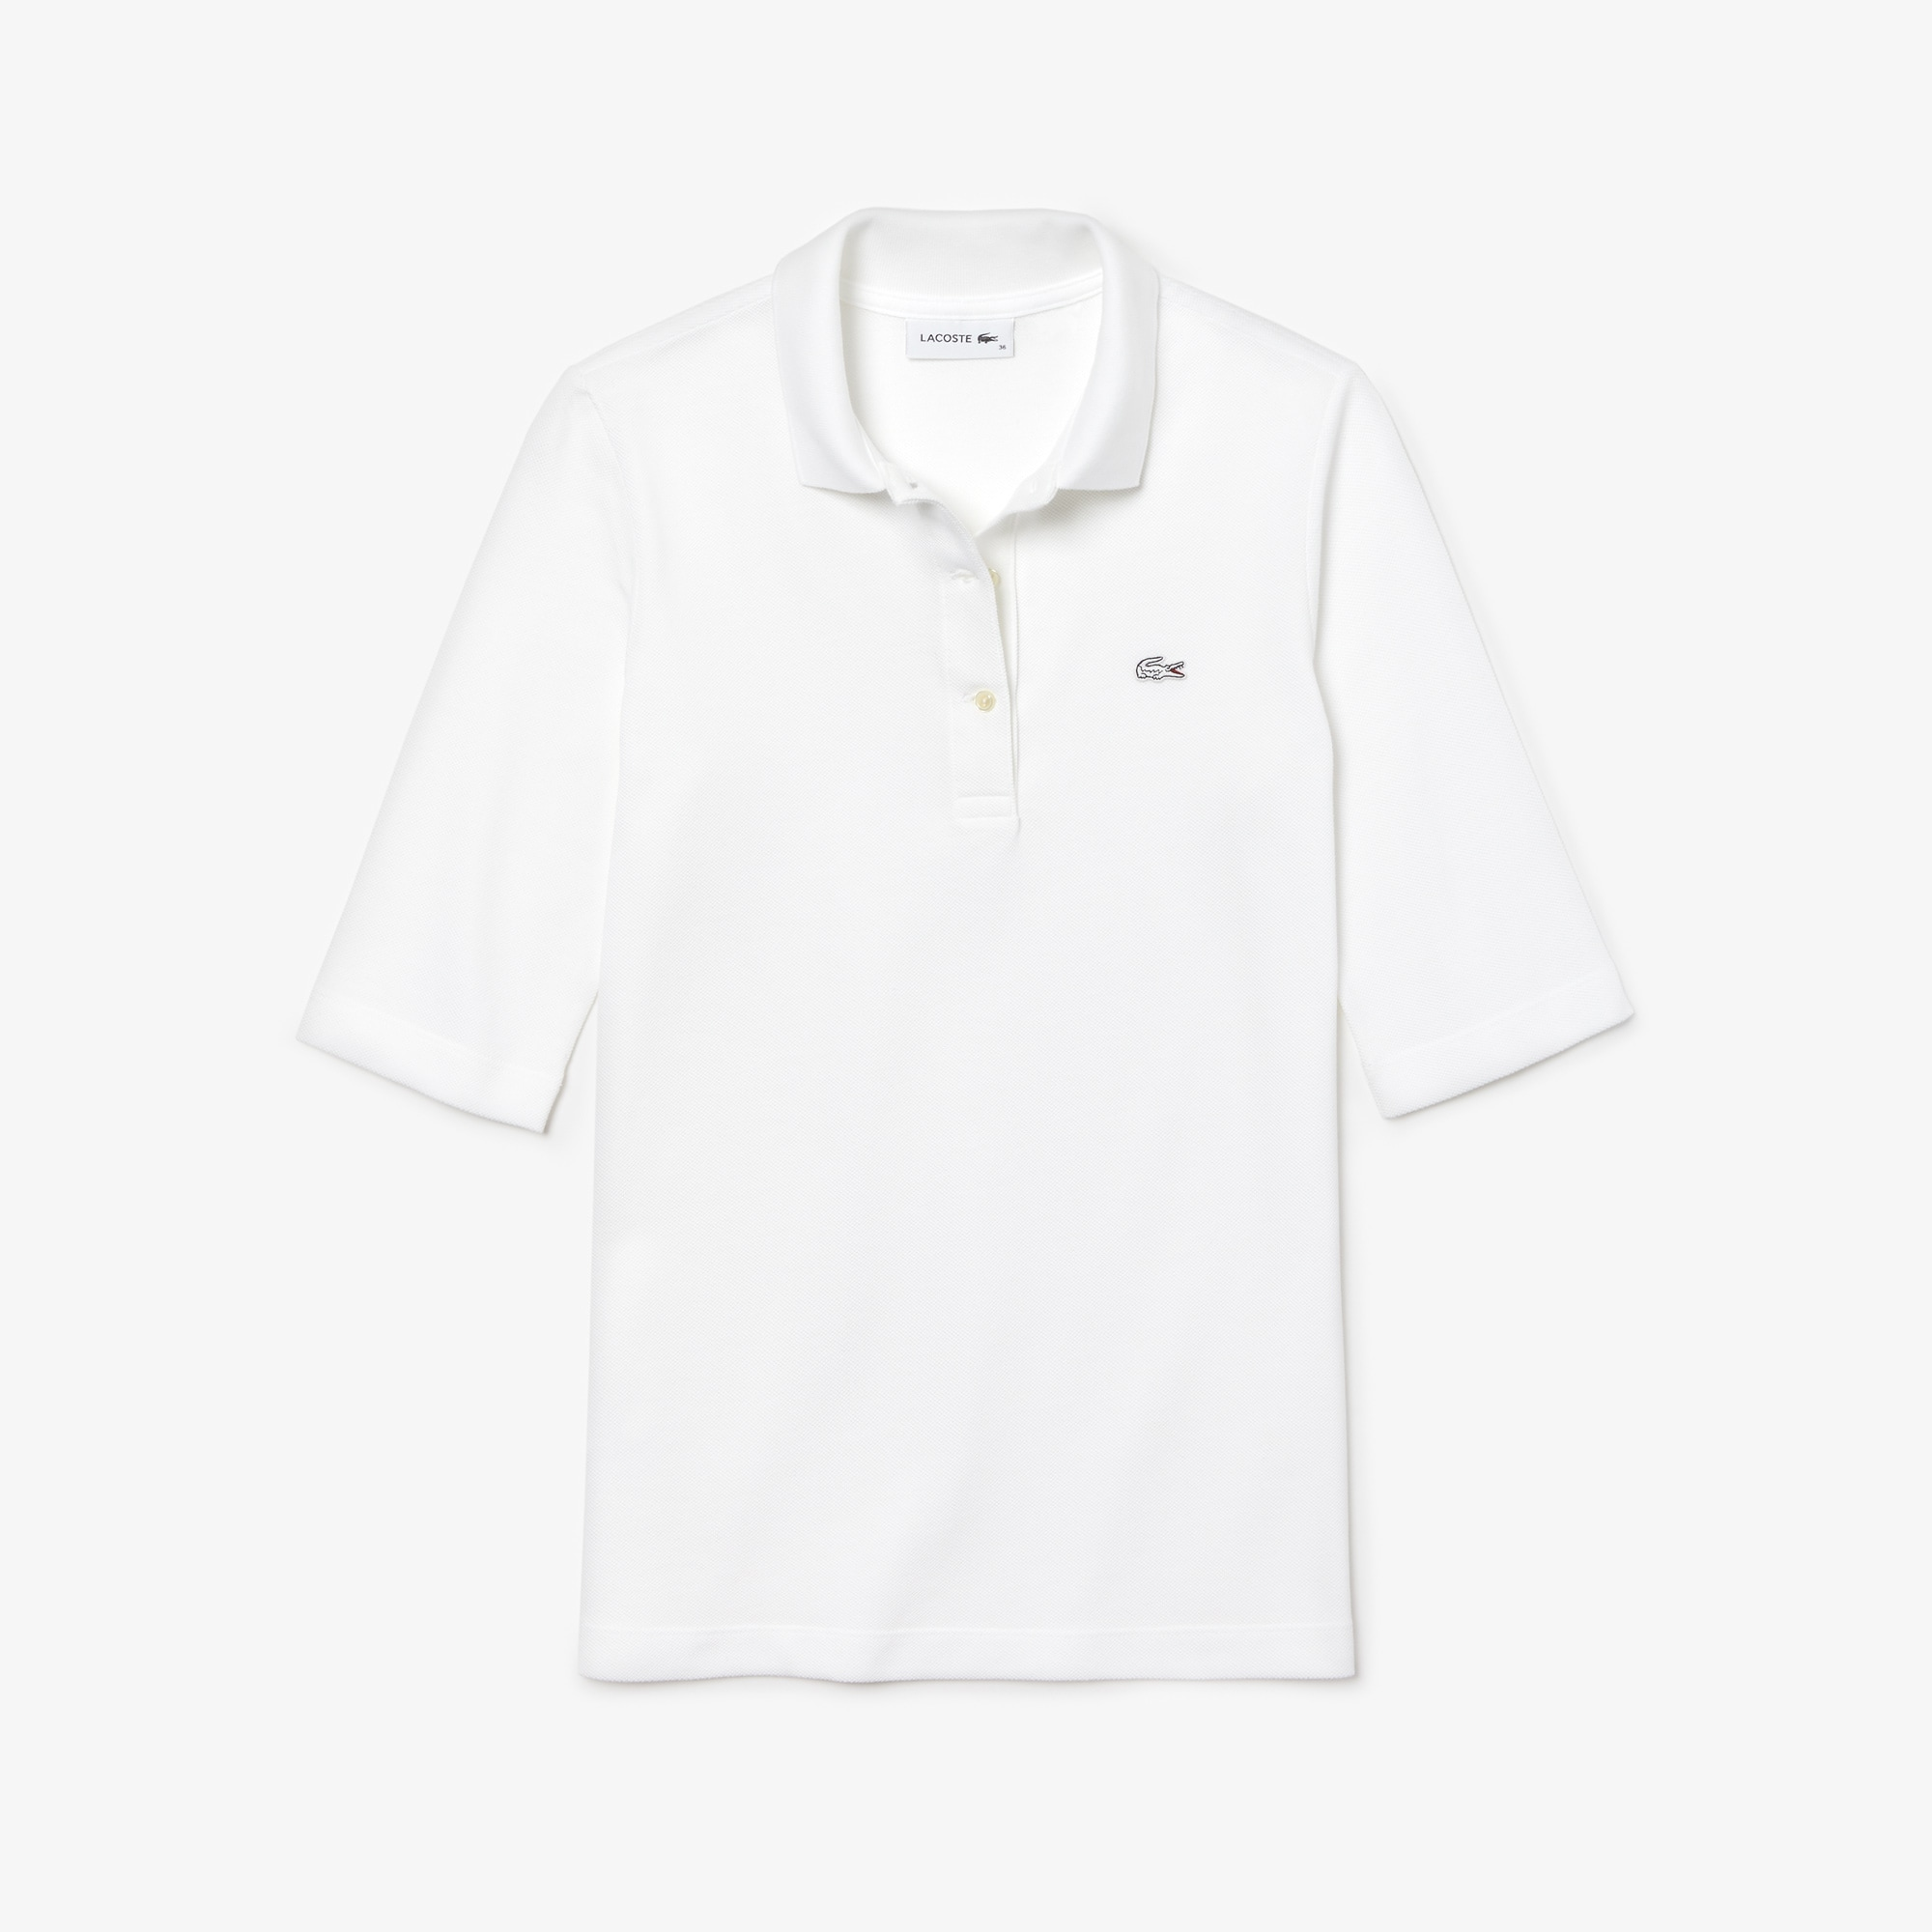 Women's Lacoste Classic Fit Petit Piqué Polo Shirt